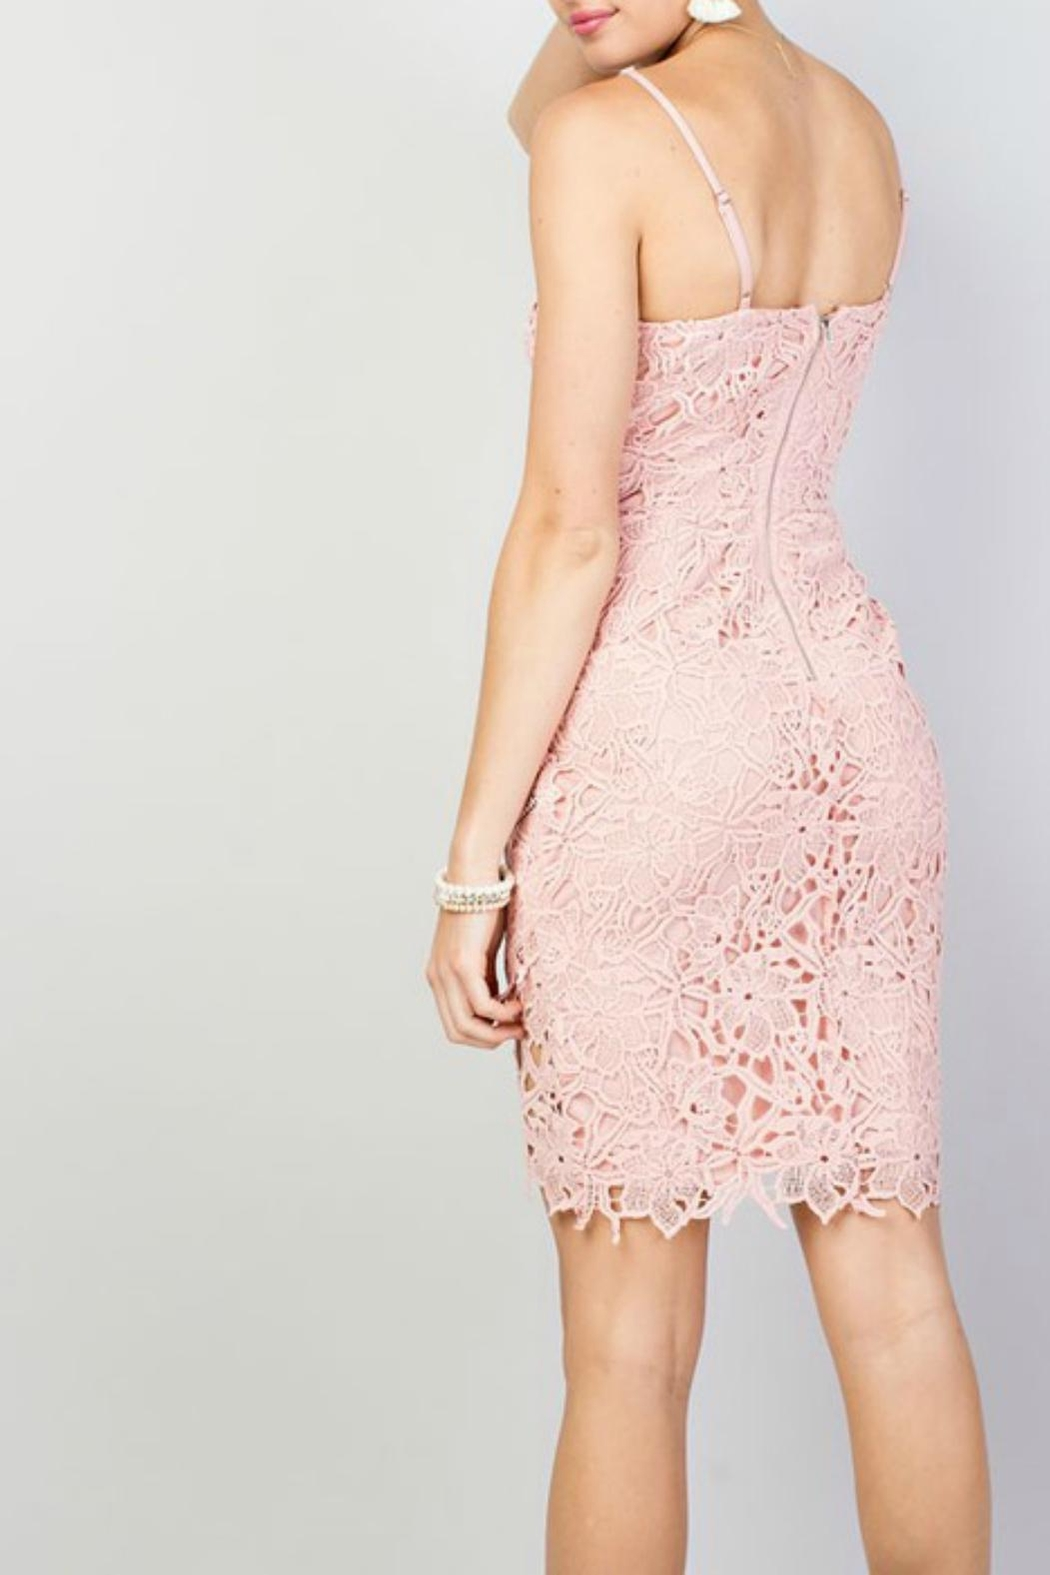 Pretty Little Things Squared Lace Dress - Front Full Image